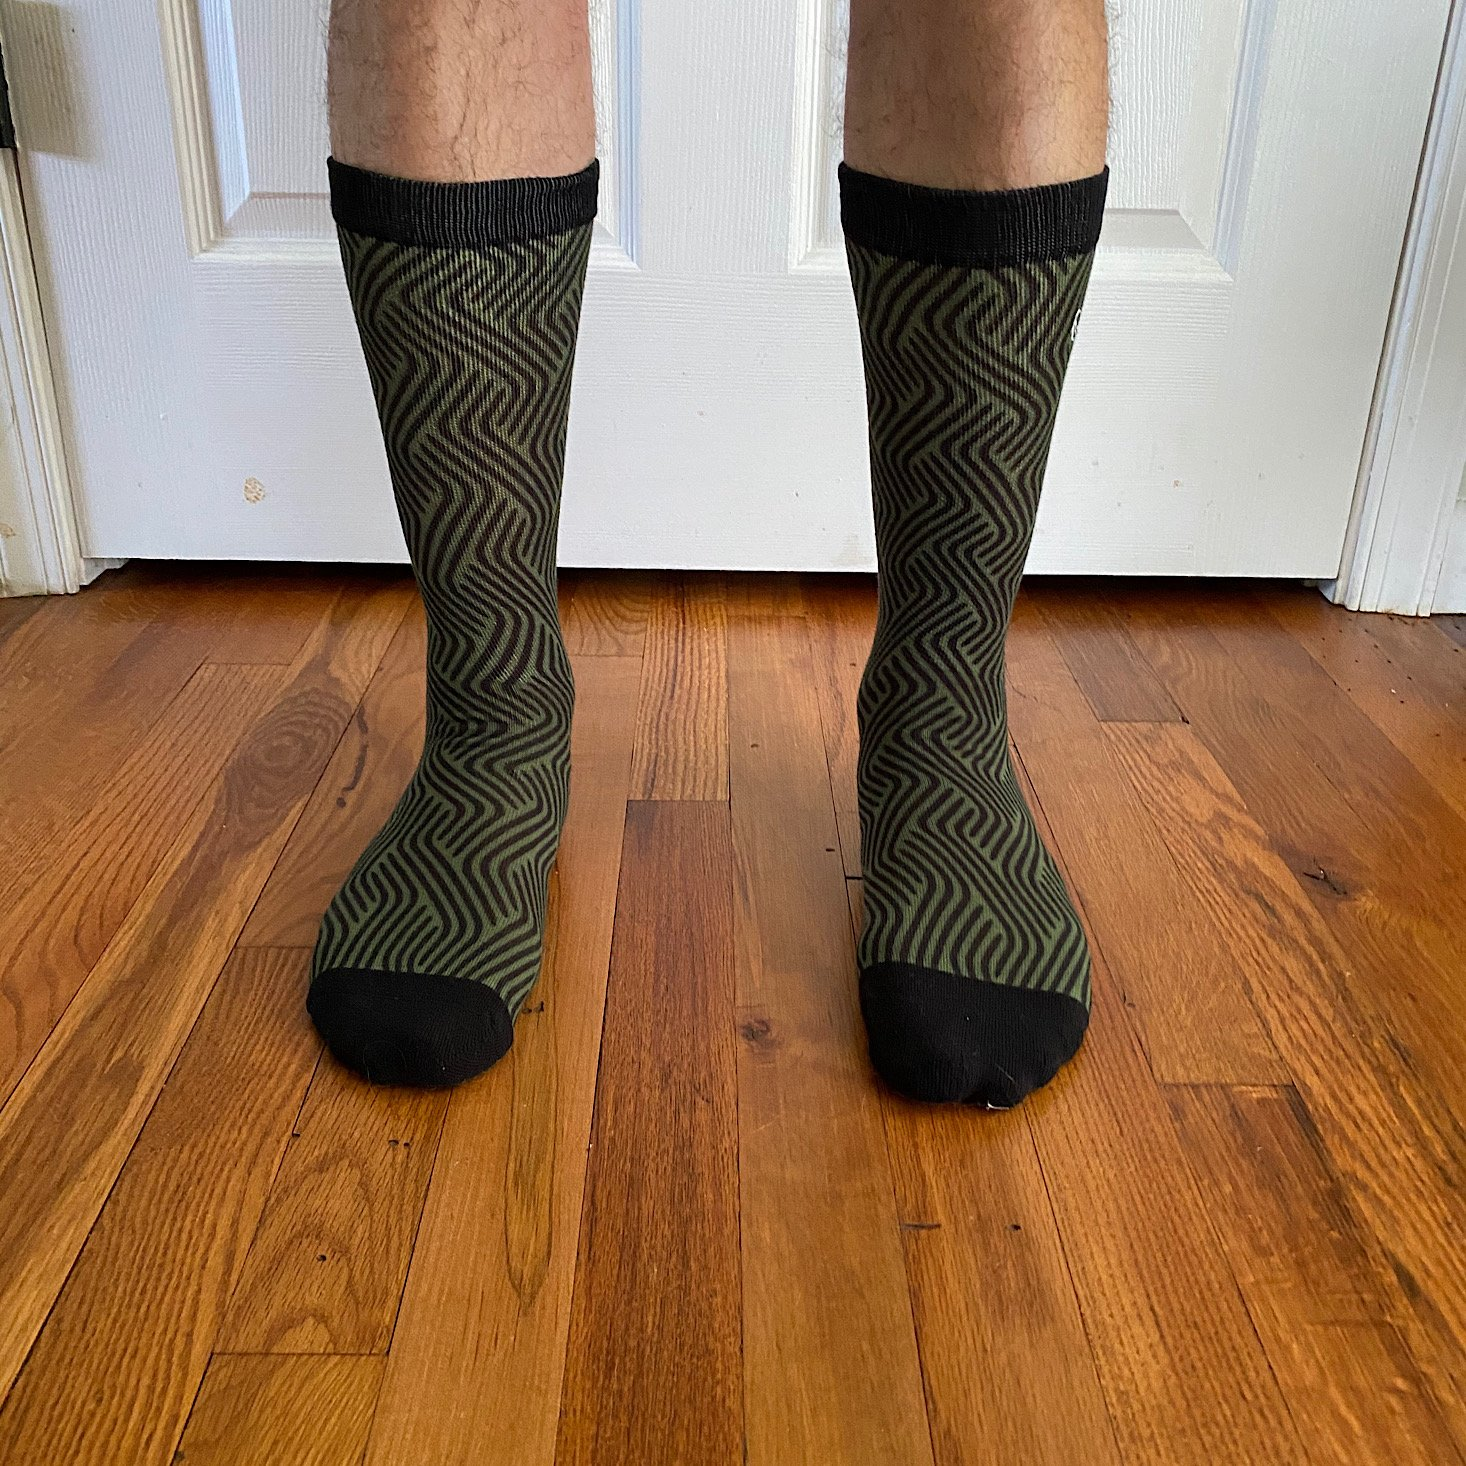 Wohven Socks Subscription Review + Coupon – May 2020